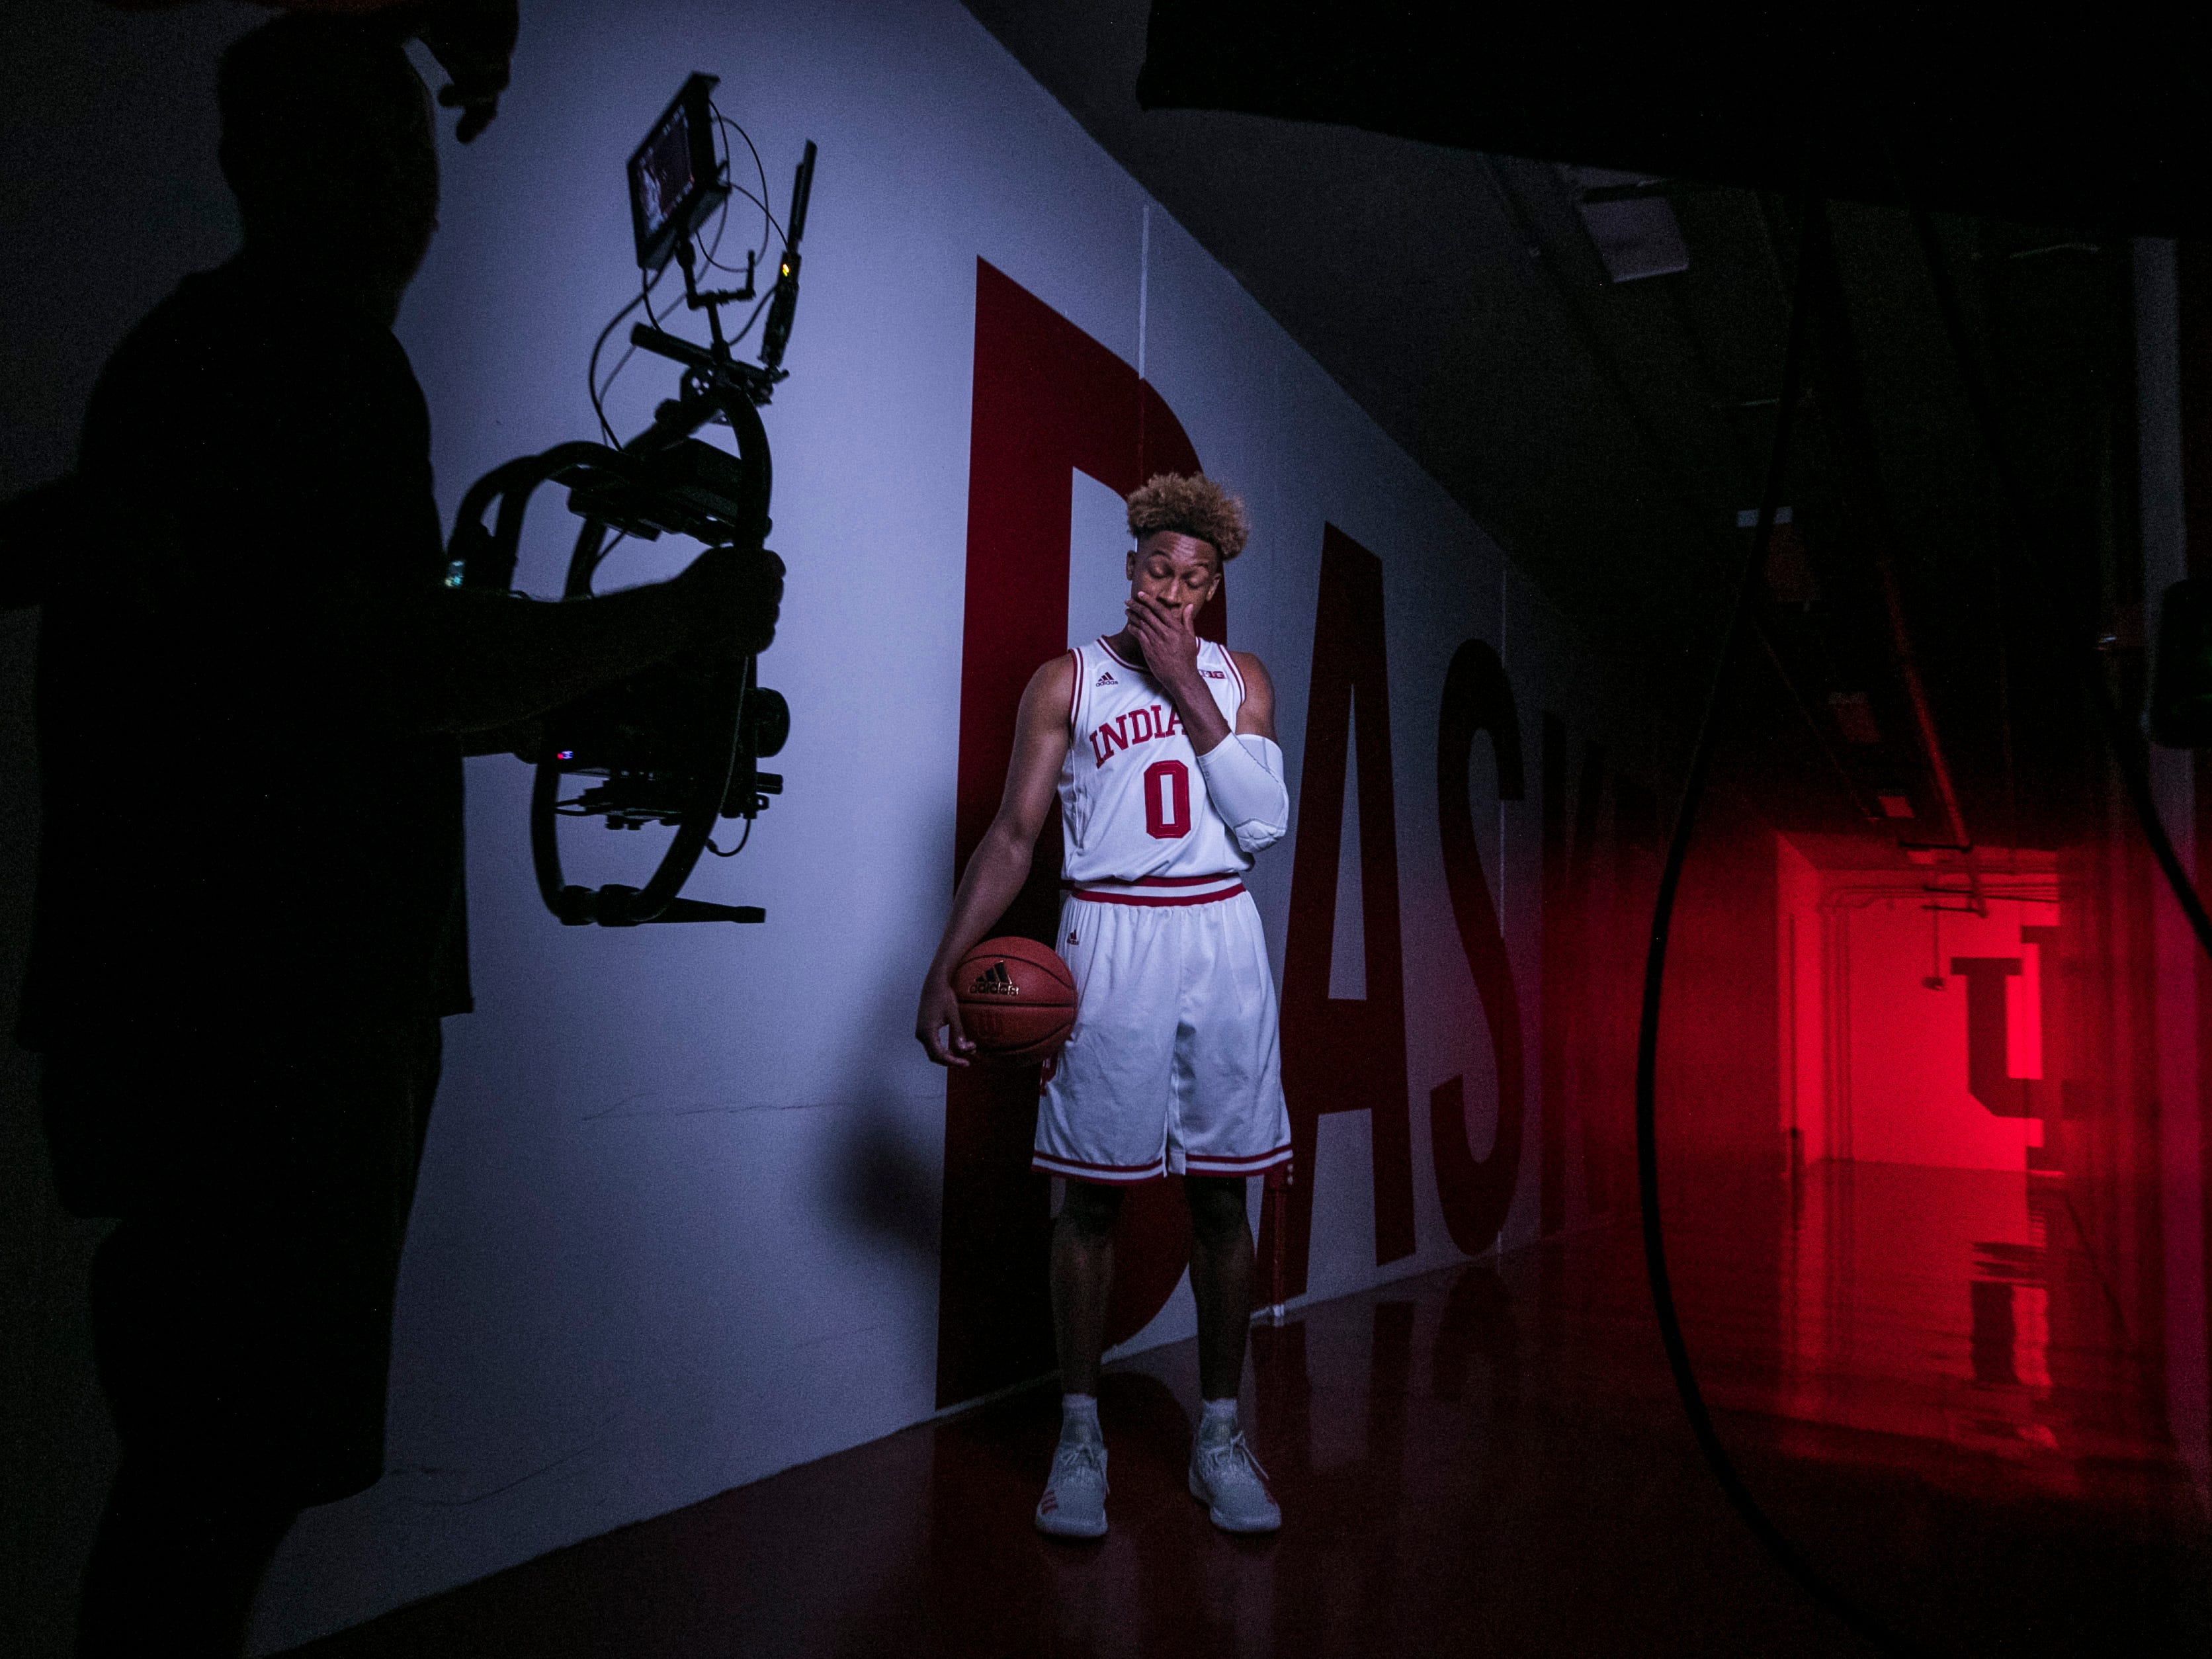 "Freshman Romeo Langford during a video shoot Wednesday afternoon at Assembly Hall. . ""We all know (Romeo) can score, and he shows that ability, but he also is able to see passes and plays before it even happens,"" said Juwan Morgan, IU's senior forward ""... As good as he is, he's only getting better."" Sept. 26, 2018"